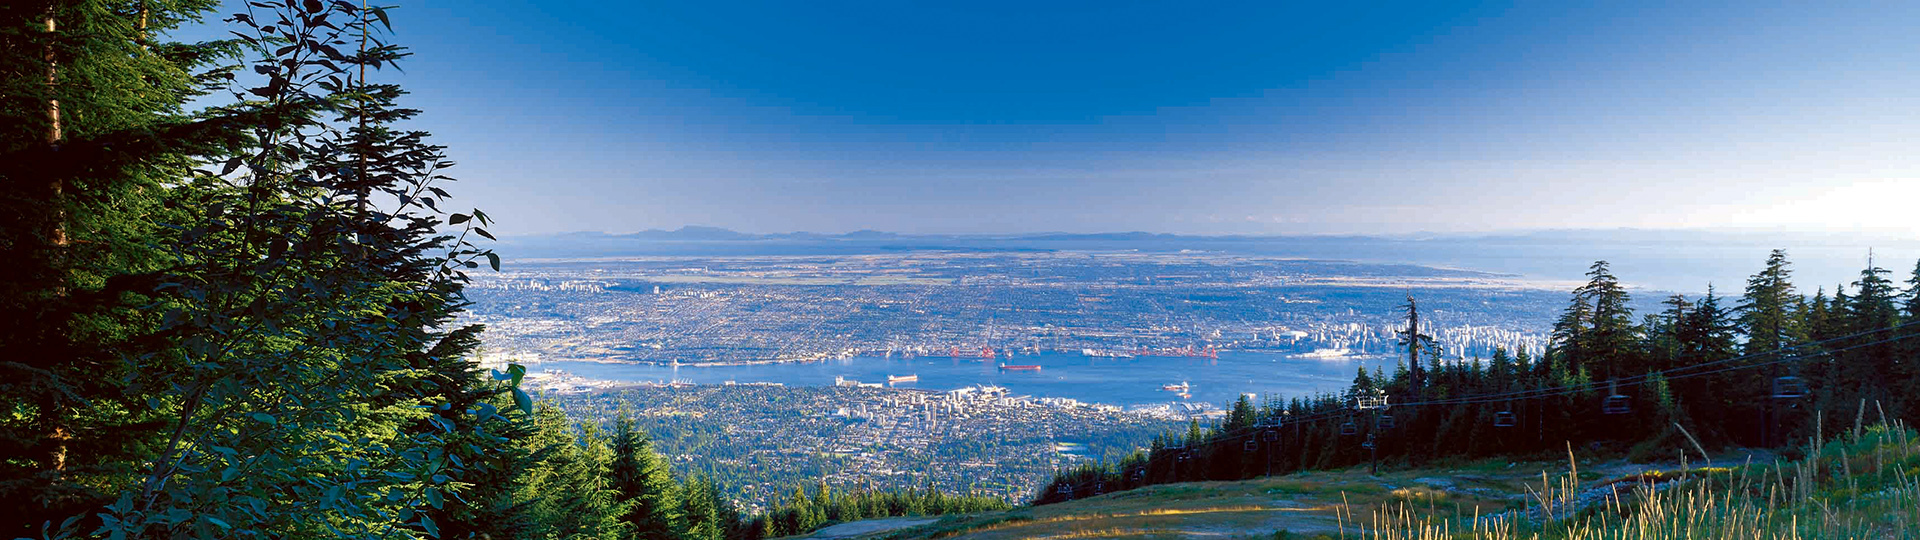 Summer At Grouse Mountain